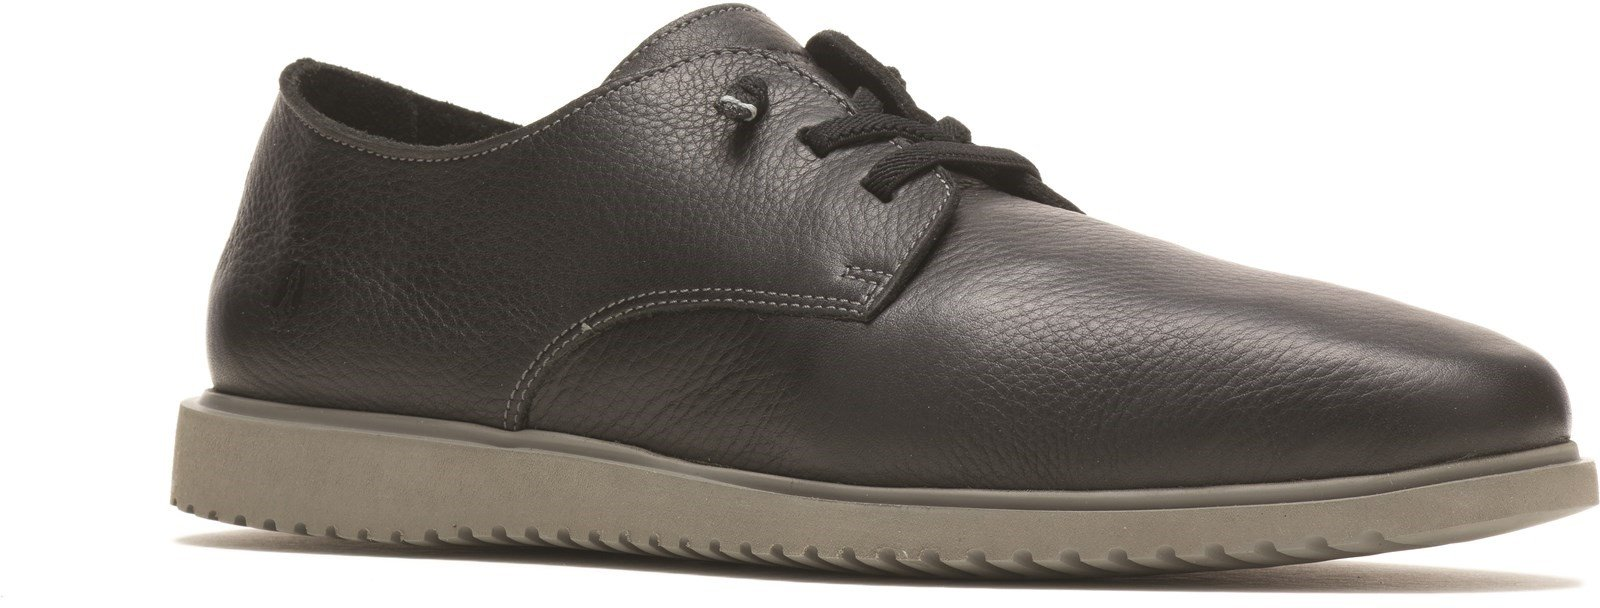 Hush Puppies Men's Everyday Lace Trainer Various Colours 31969 - Black 6